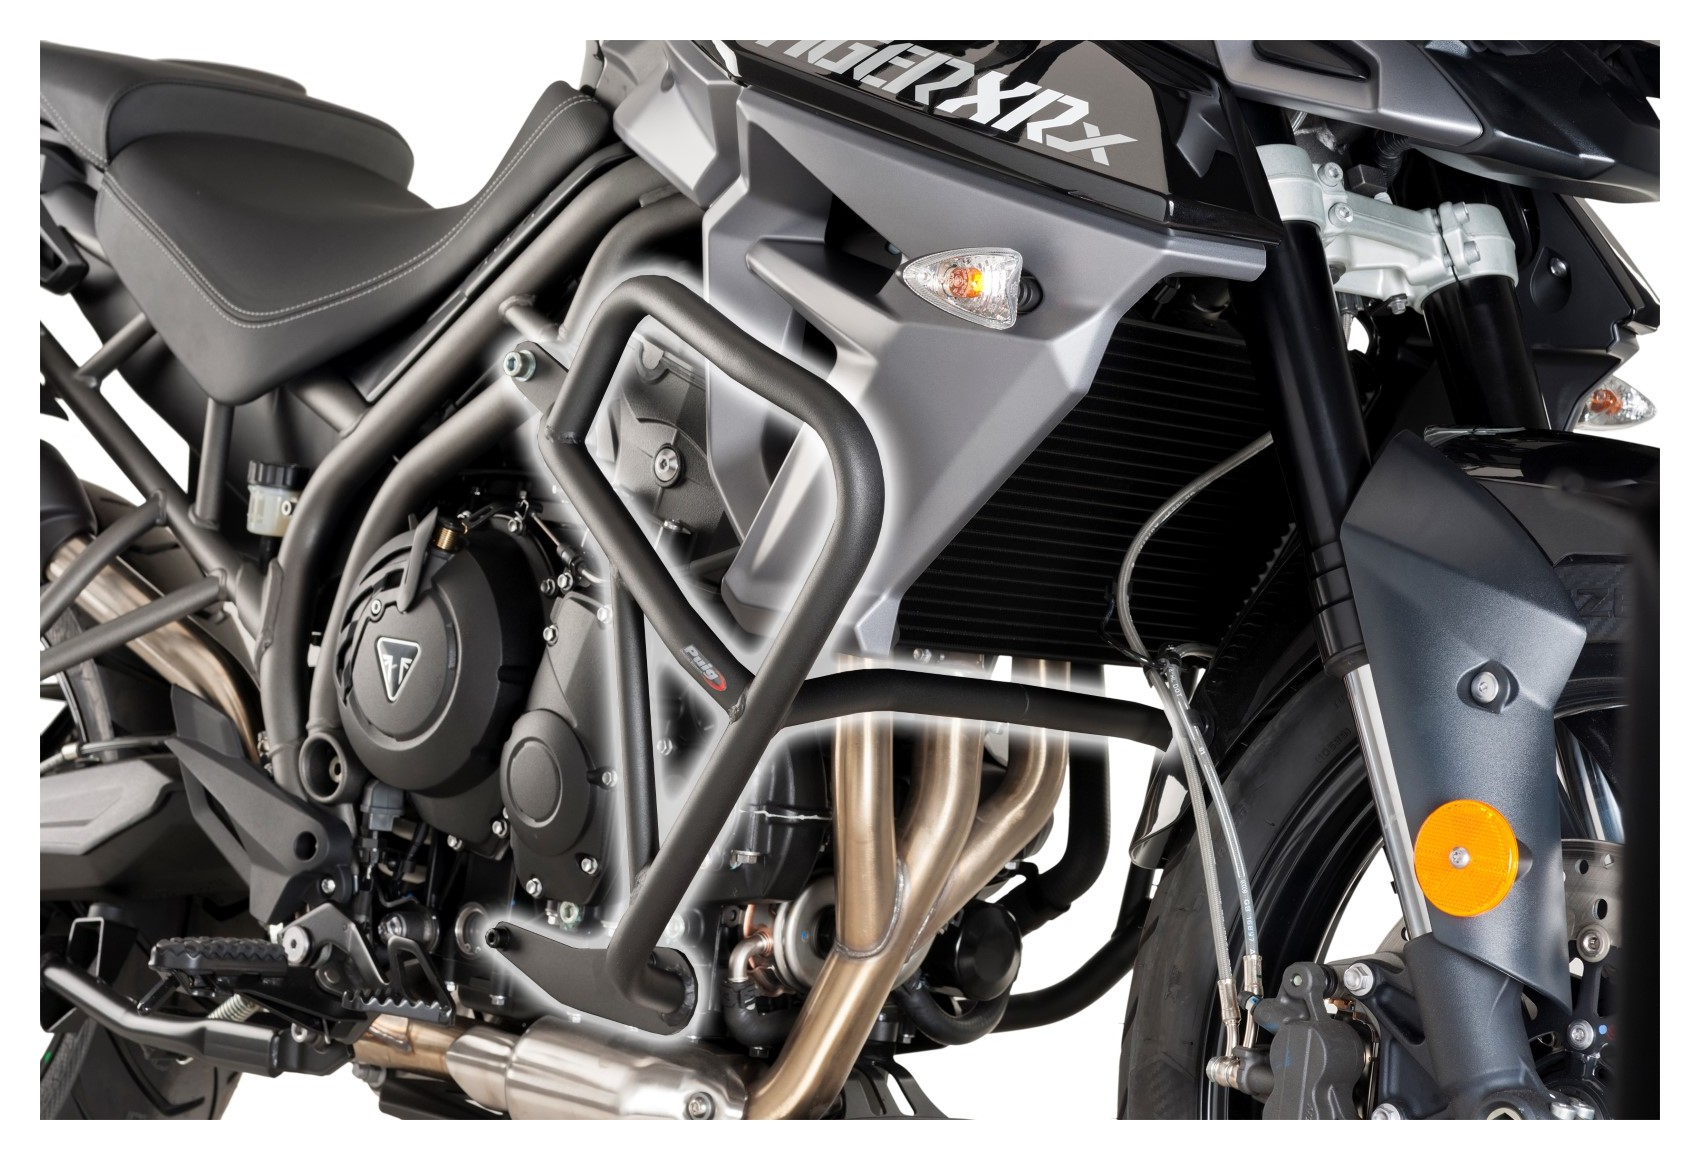 hight resolution of puig engine guards triumph tiger 800 xc xr 2015 2018 5